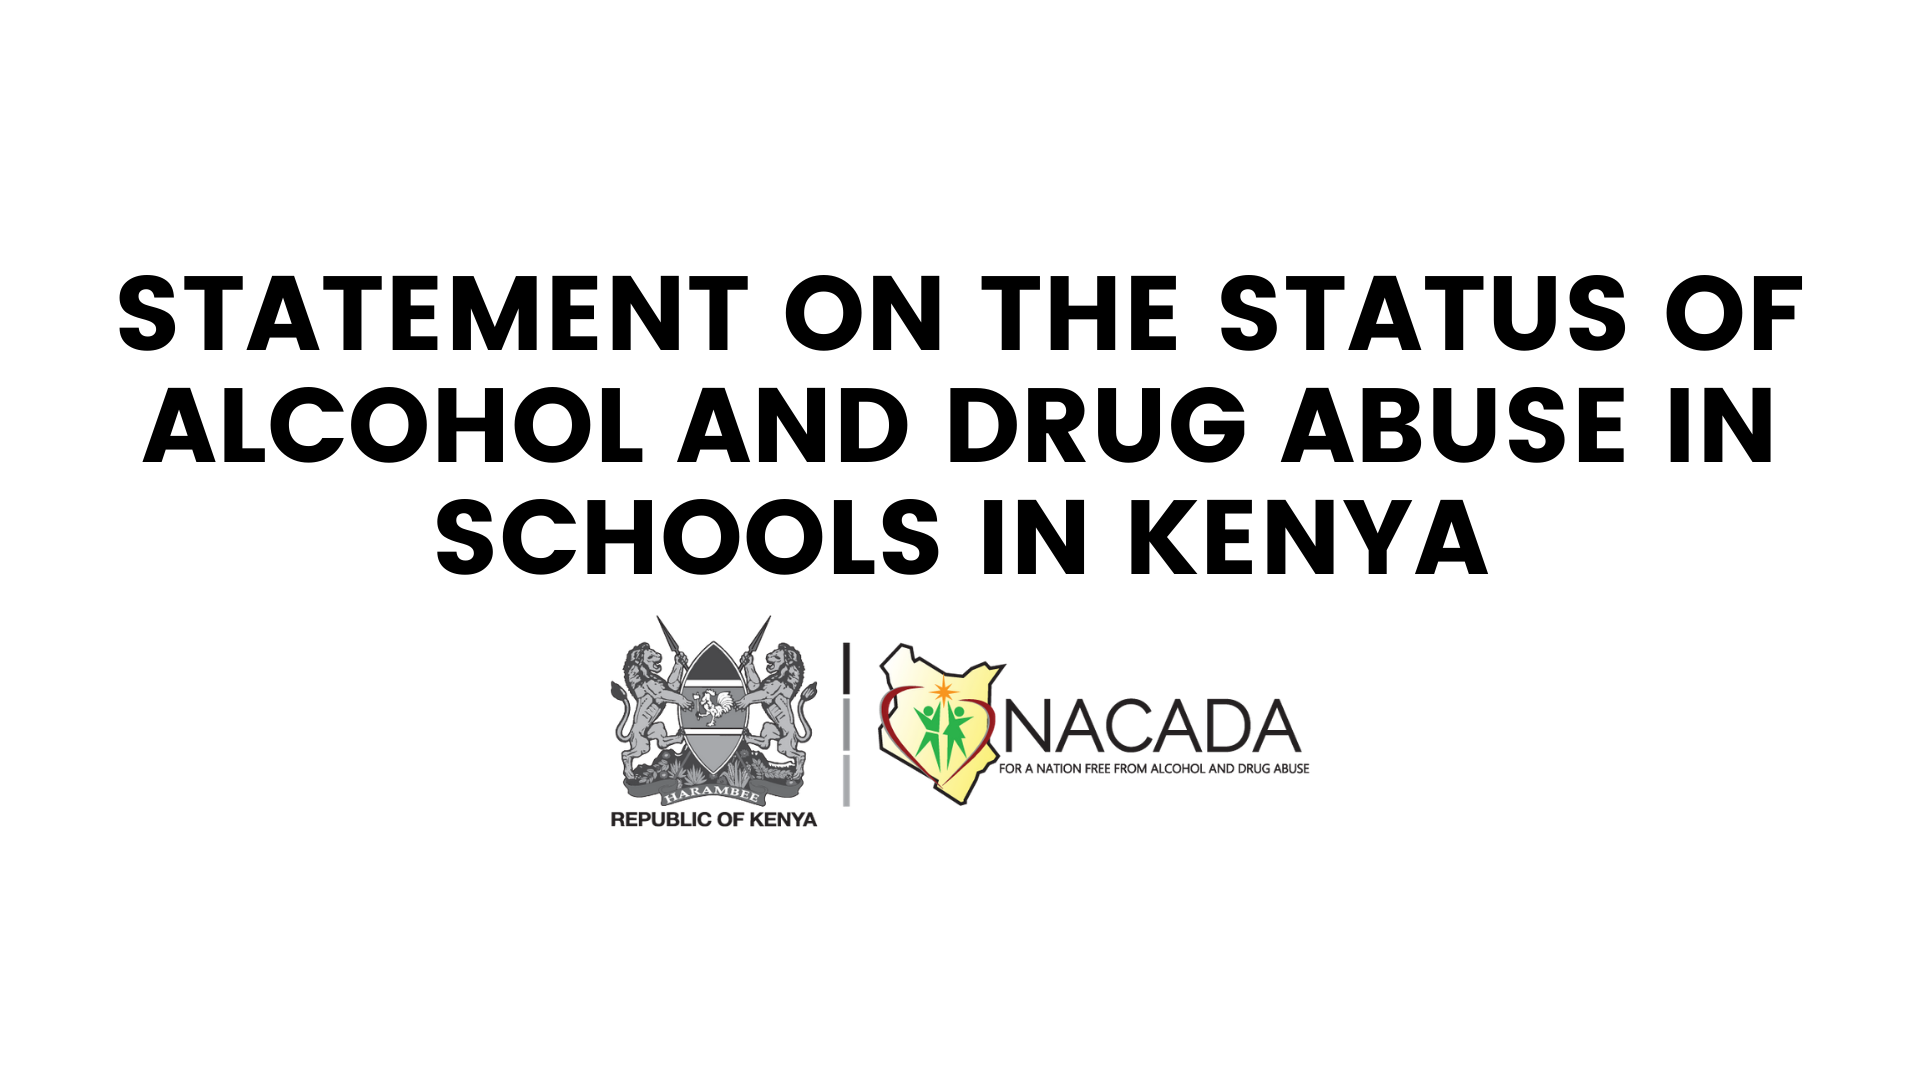 STATEMENT ON THE STATUS OF ALCOHOL AND DRUG ABUSE IN SCHOOLS IN KENYA